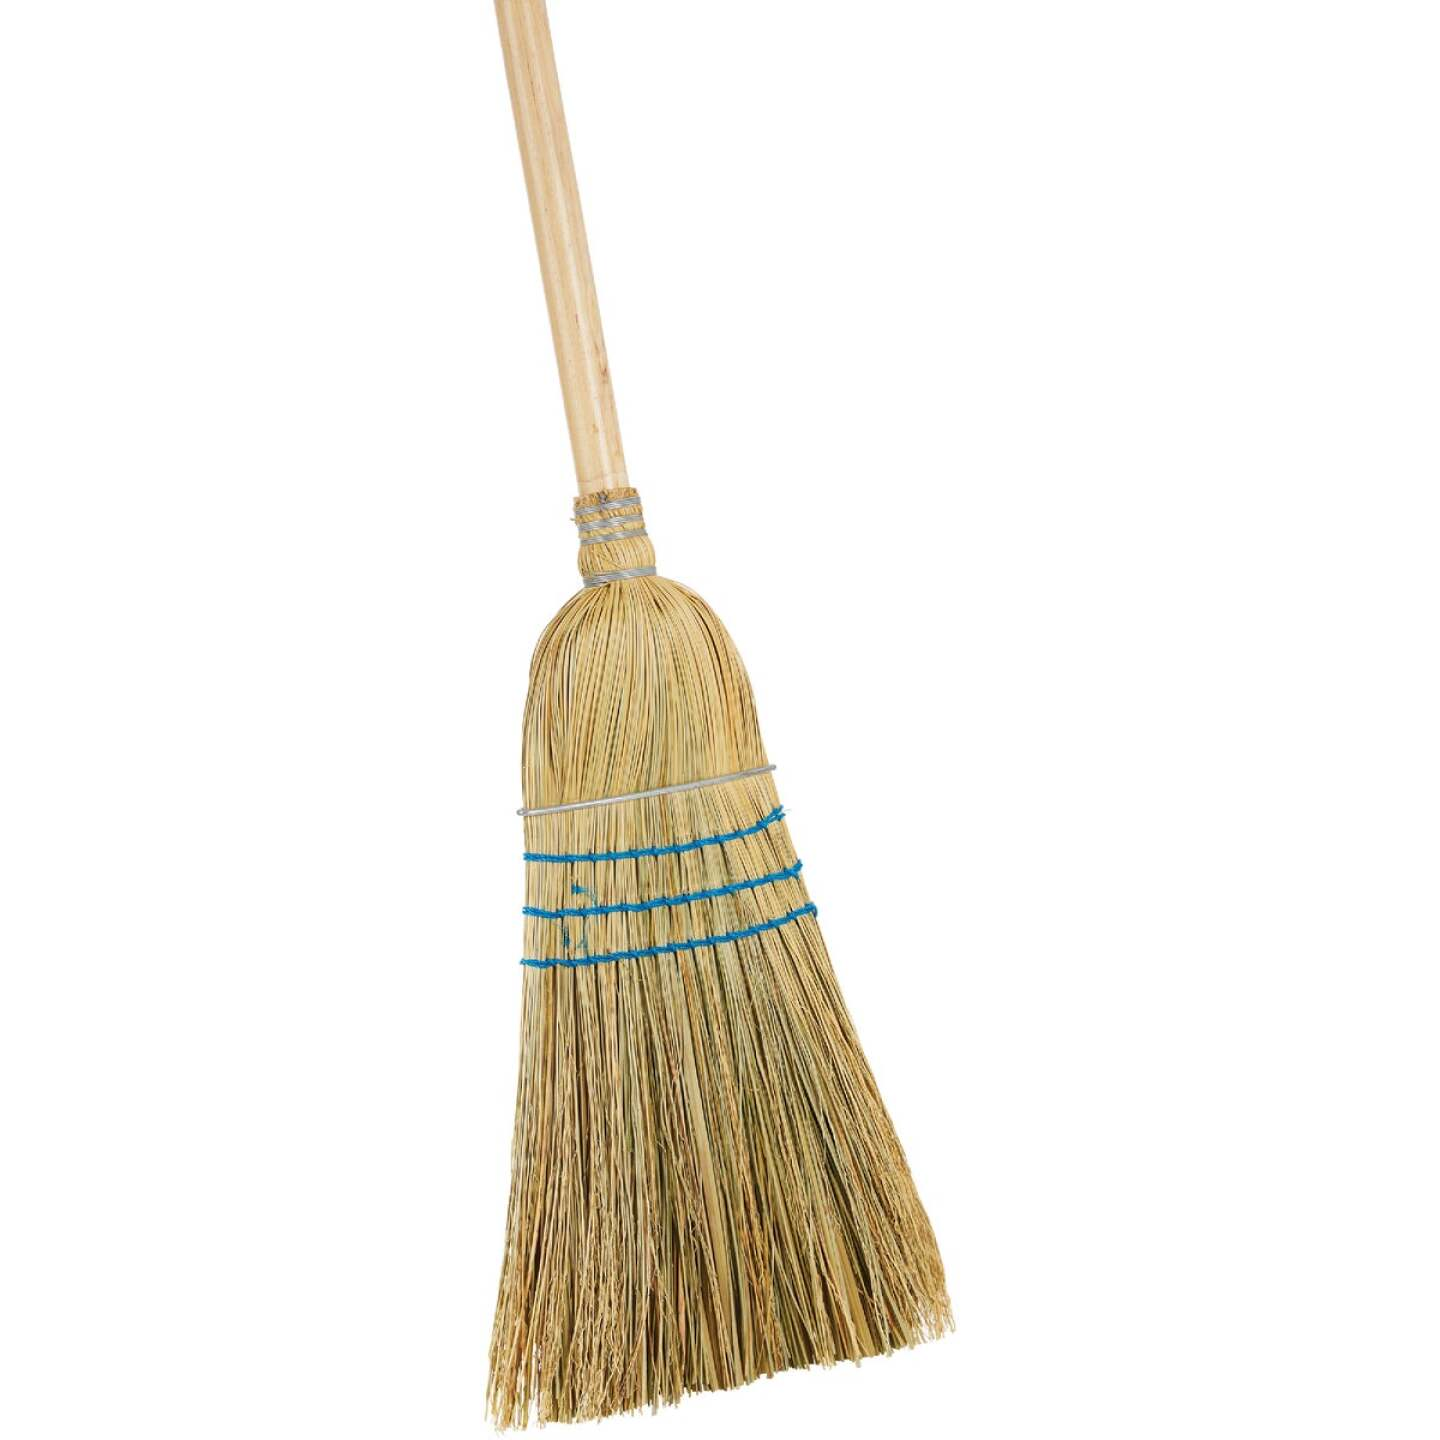 Reynera 13 In. W. x 42 In. L. Natural Hardwood Handle Good Quality Corn Broom Image 1